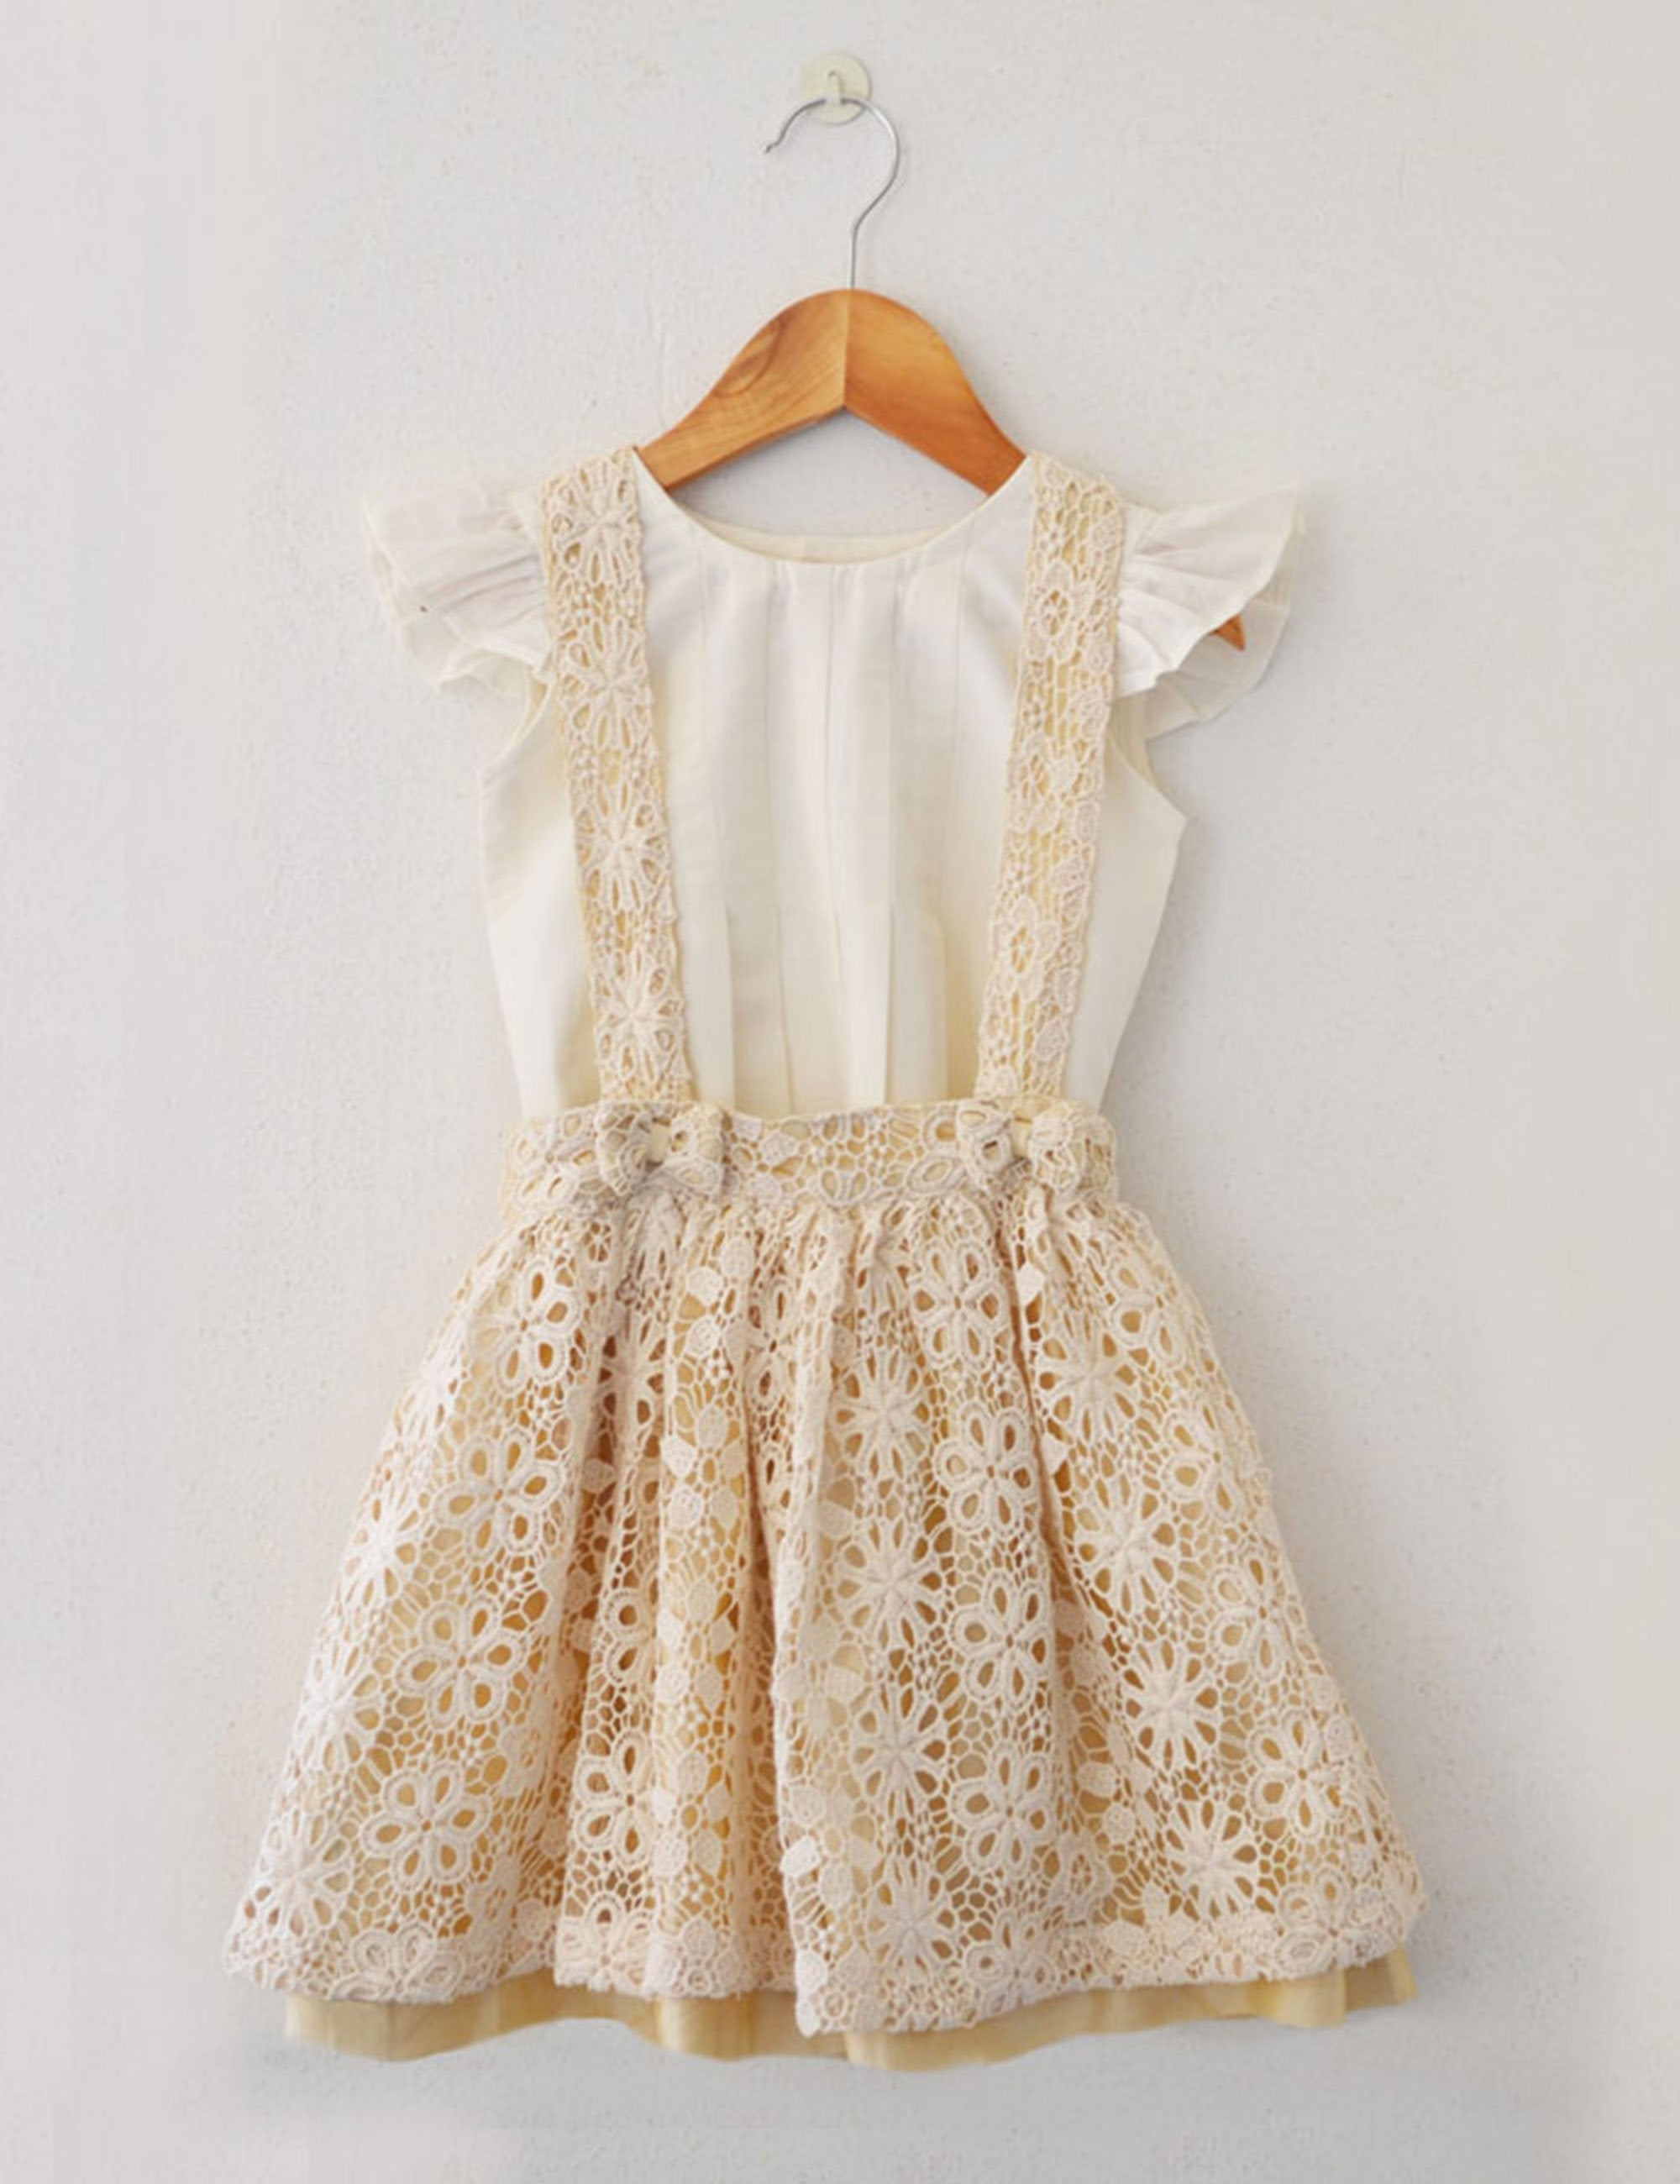 Linen dress in beige colour with lace pattern for girls